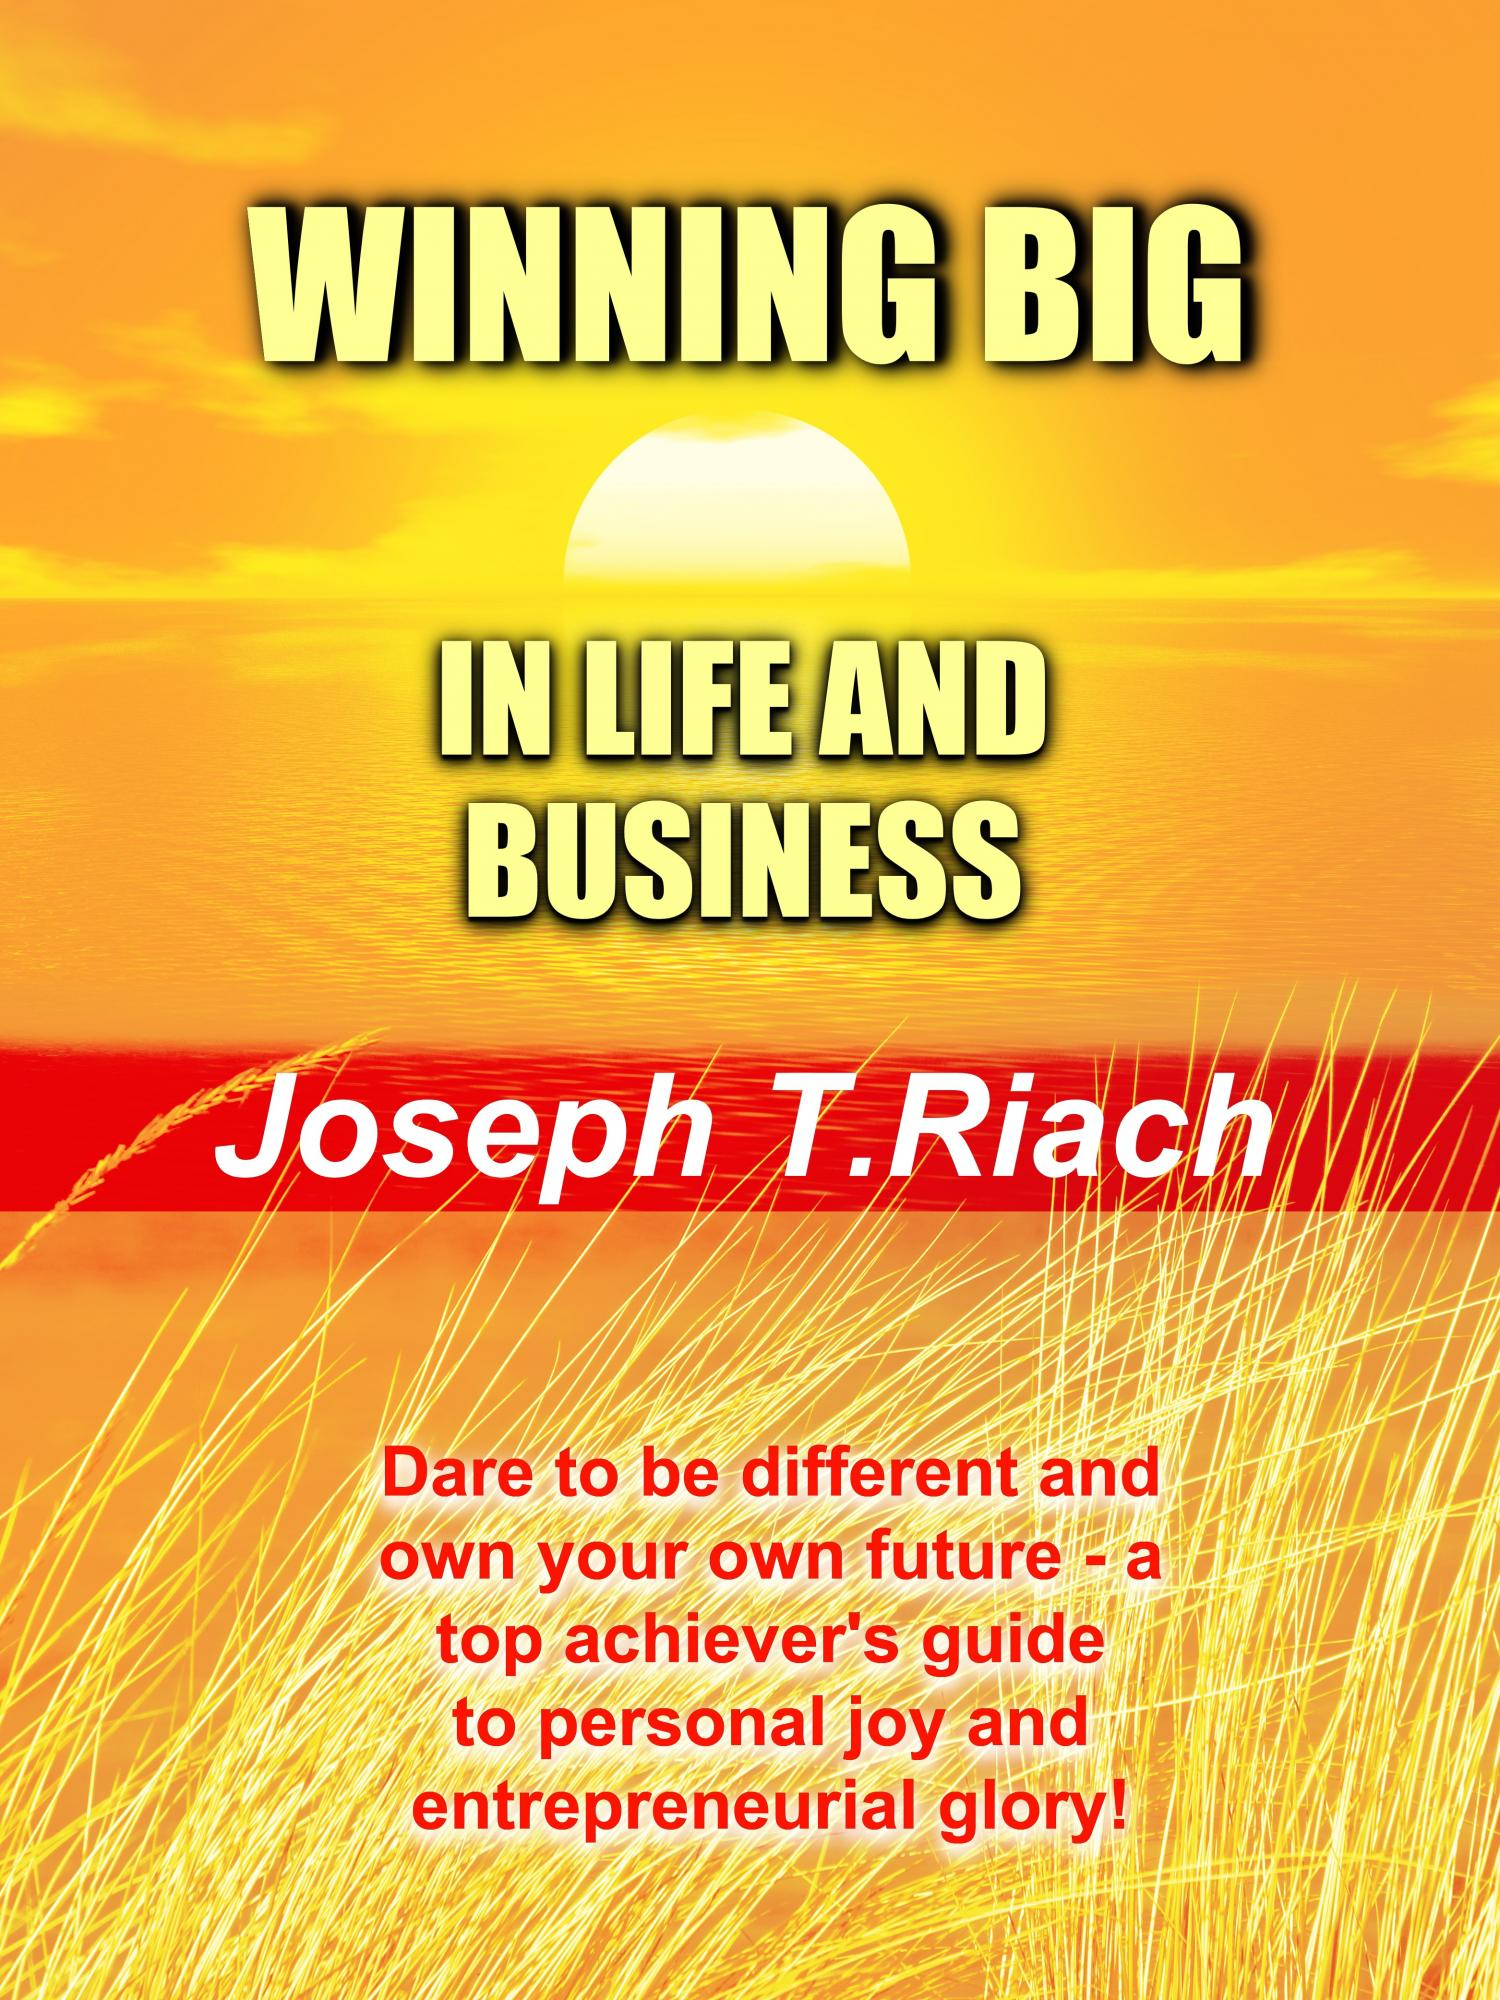 Winning Big In Life And Business is  Joseph Tom Riach author, paperback and ebook, how to work smart and control your own destiny